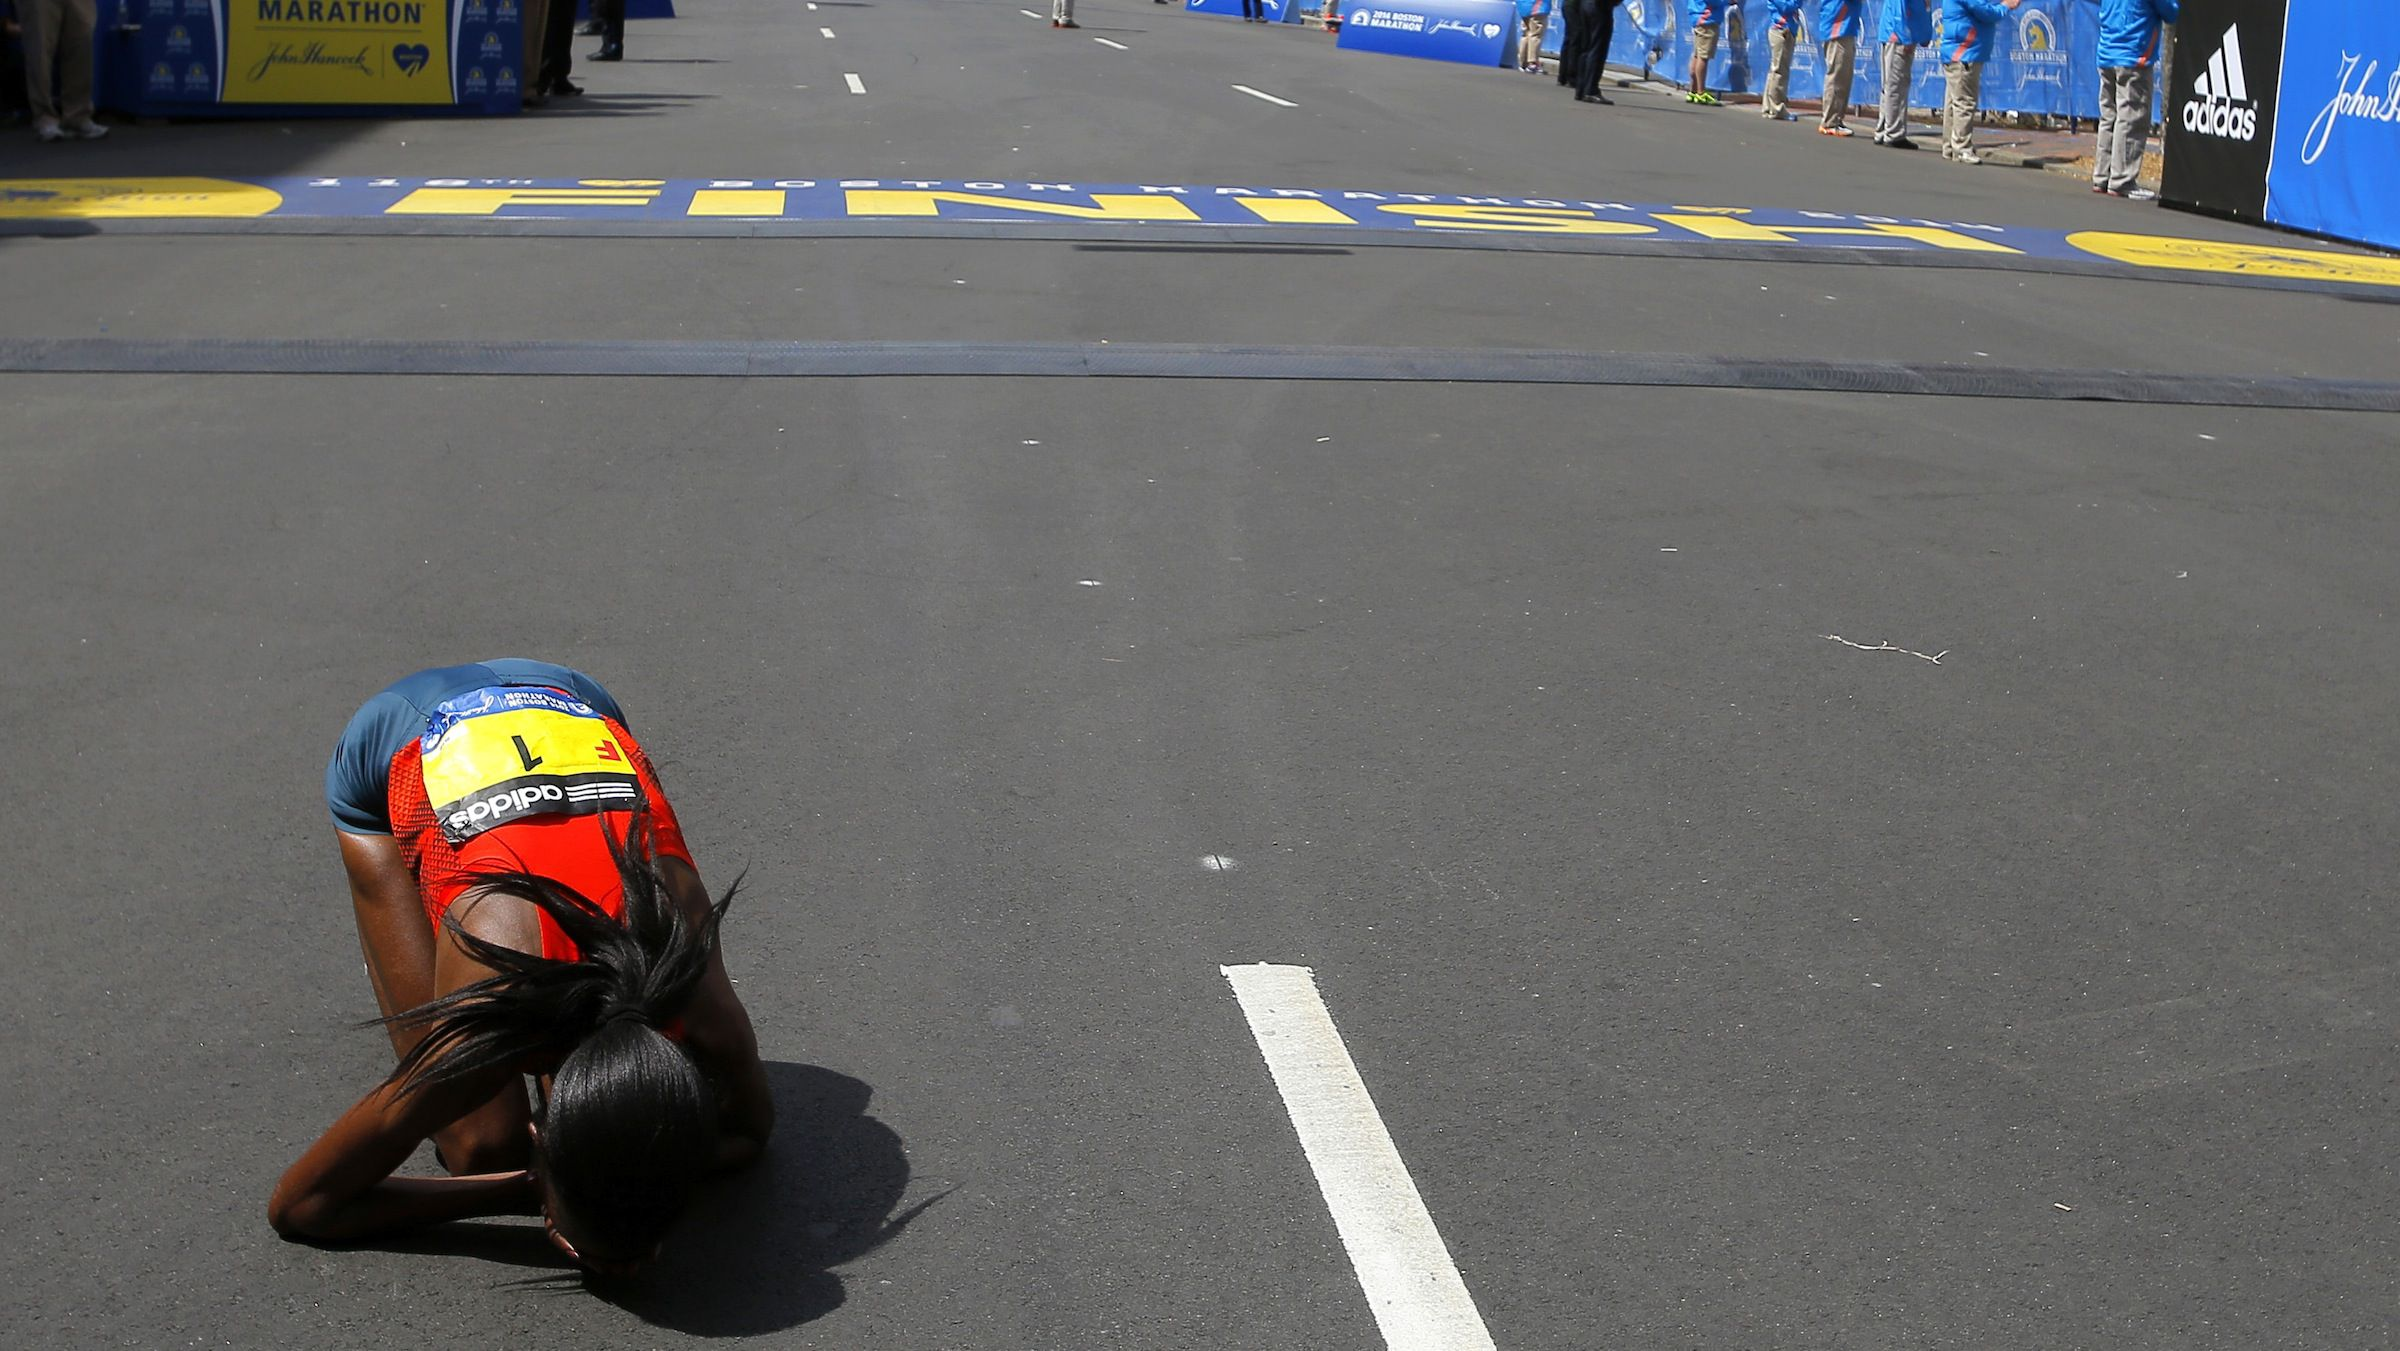 Rita Jeptoo of Kenya reacts after winning the women's division of the 118th running of the Boston Marathon in Boston, Massachusetts April 21, 2014.   REUTERS/Brian Snyder (UNITED STATES - Tags: SPORT ATHLETICS) - RTR3M3UR